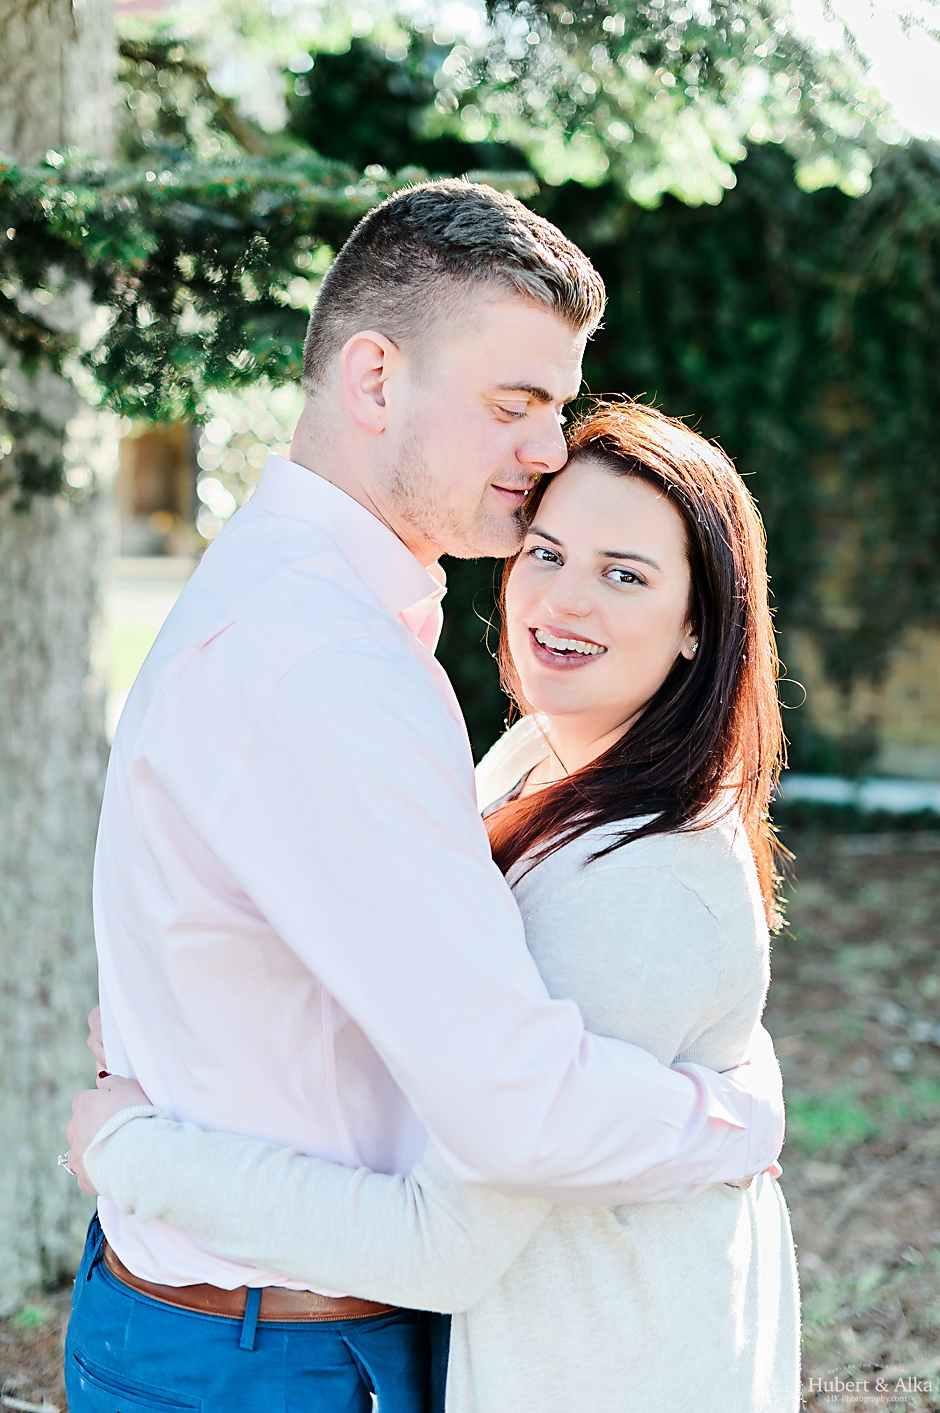 waveny park engagement nicole gareth hk photography spring engagement shoot